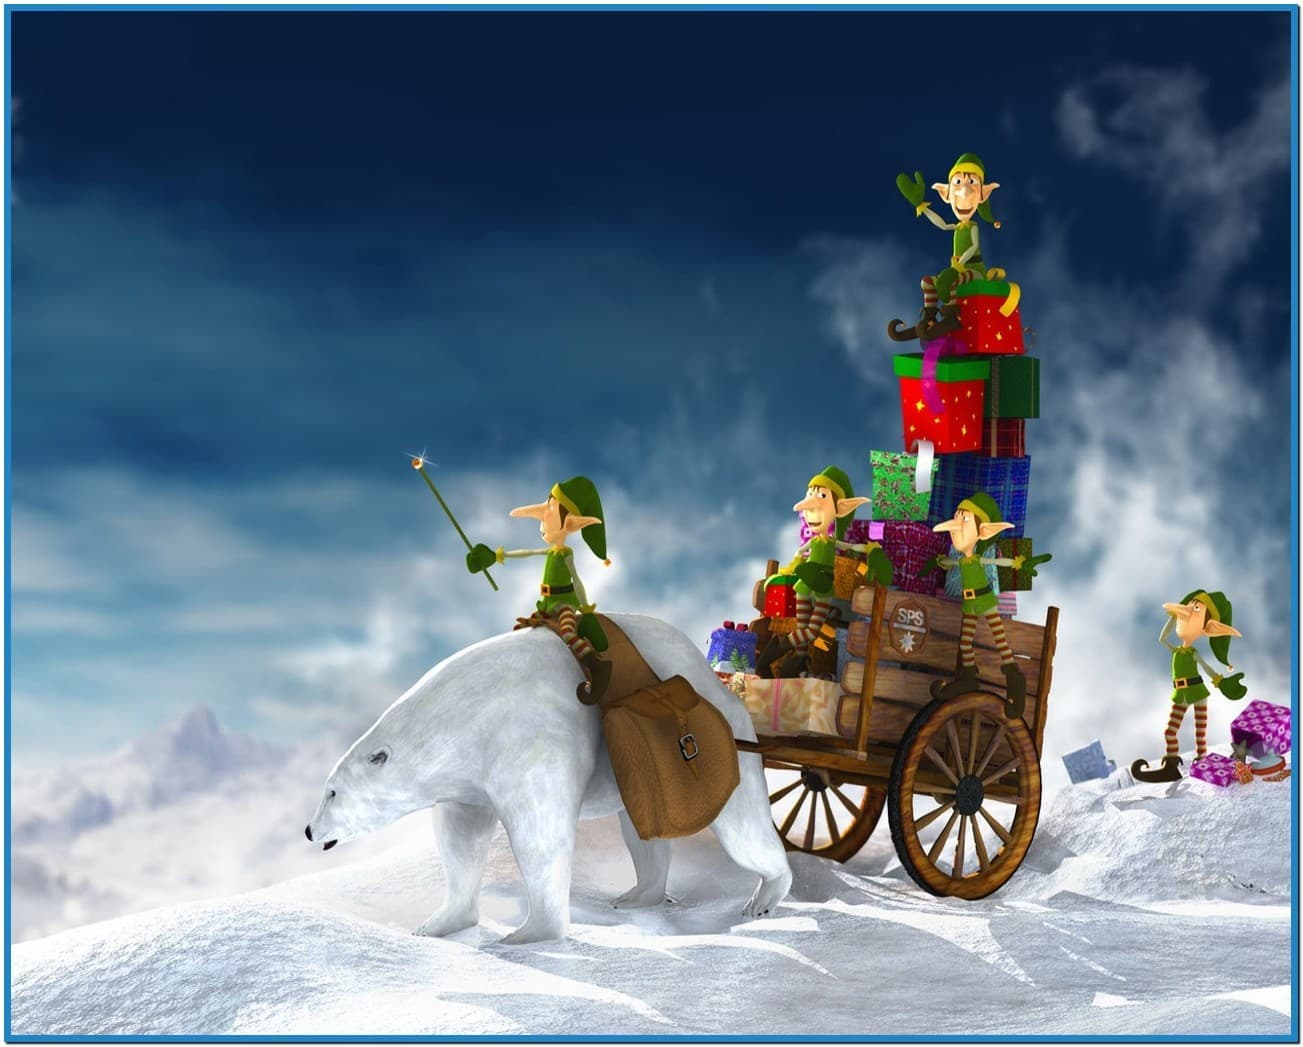 Christmas screensavers wallpaper 3d   Download 1303x1047